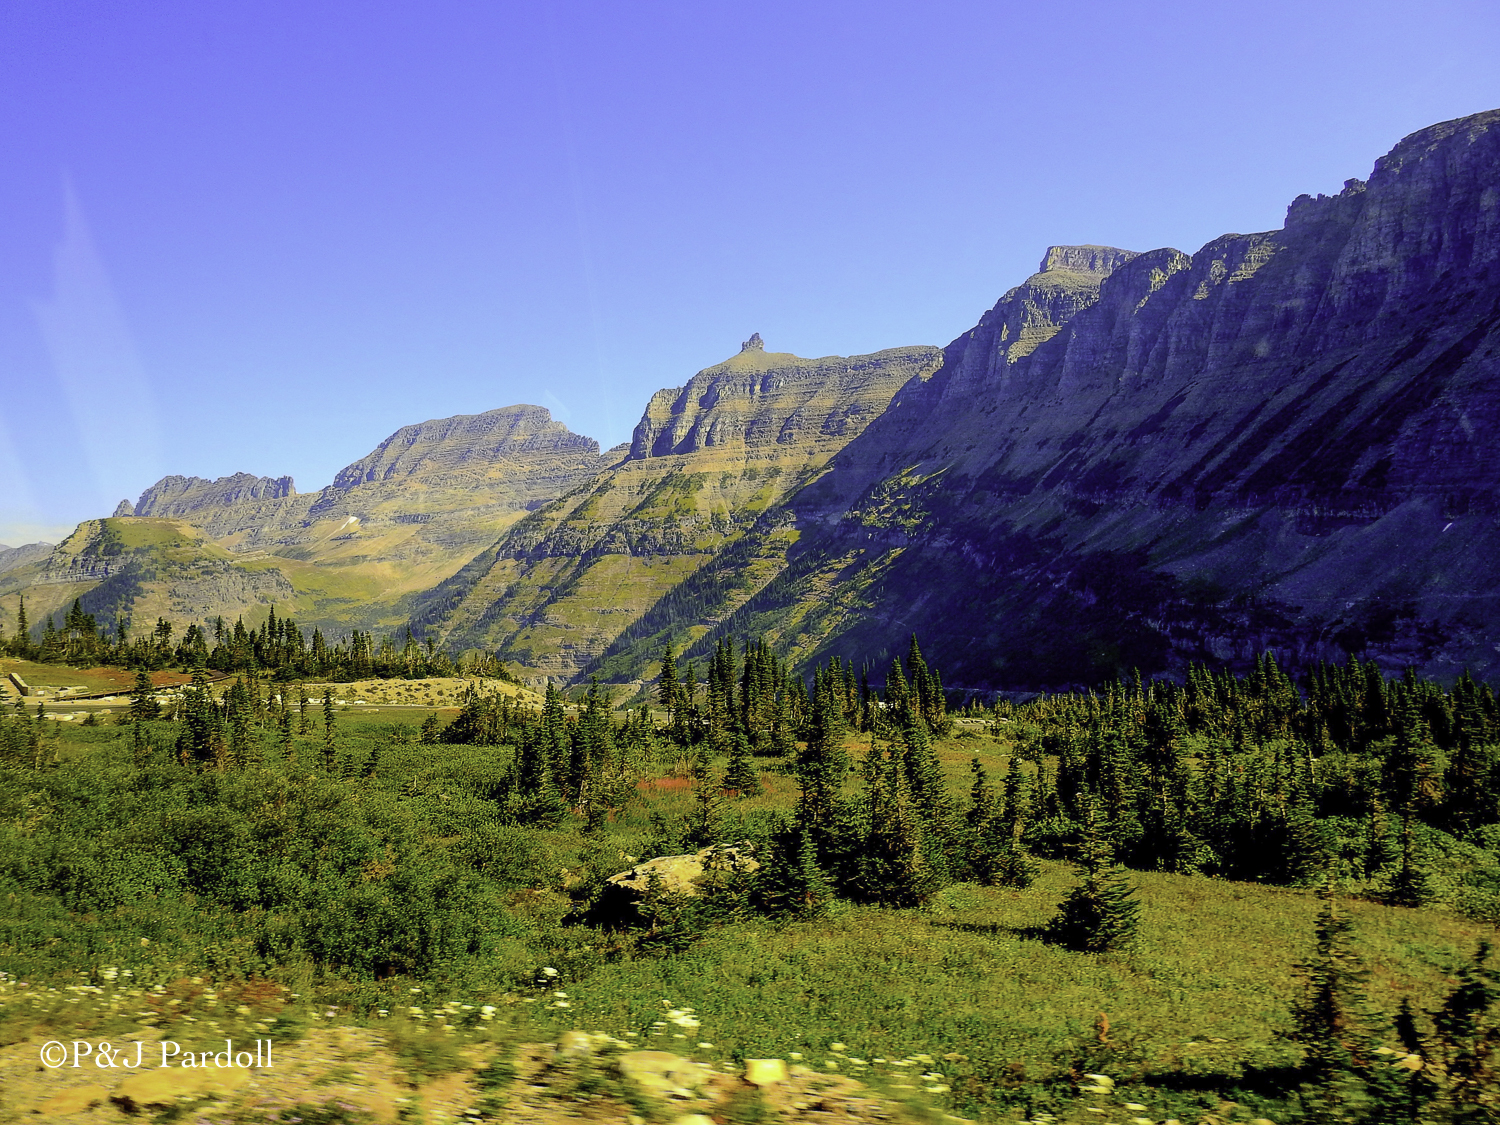 Along the 'Going to the Sun' Highway in Glacier National Park